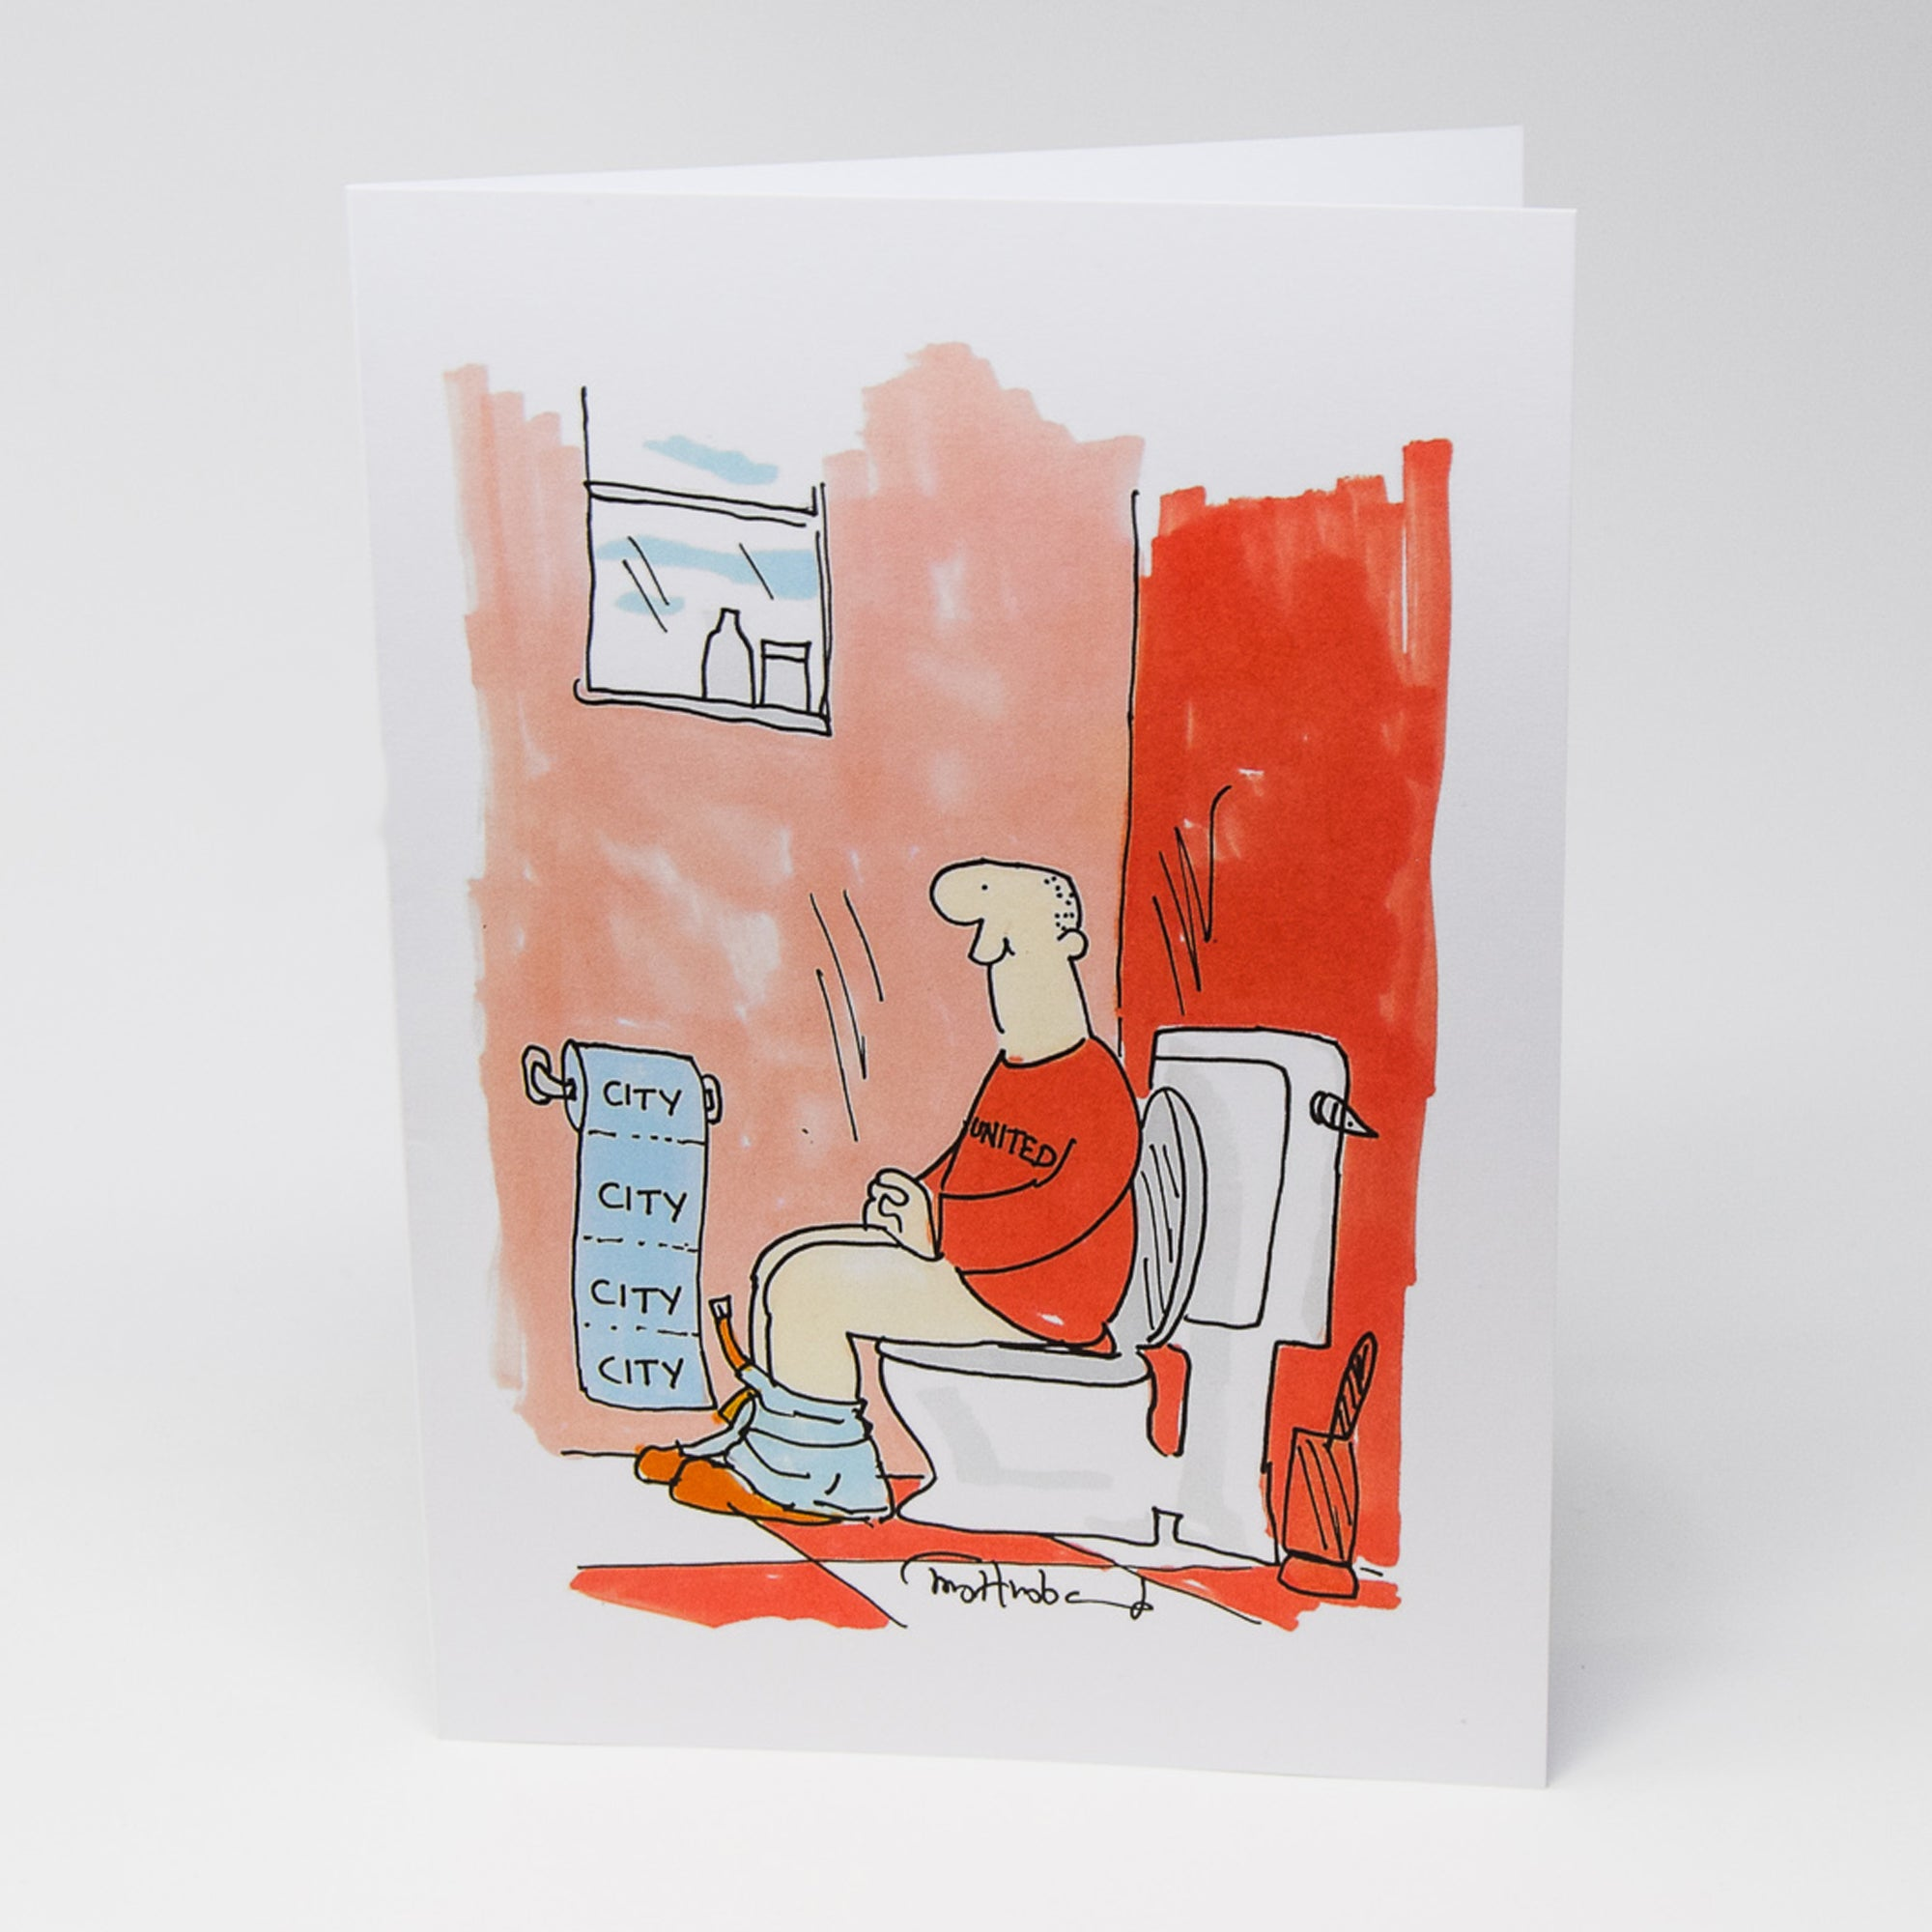 Manchester City Toilet Paper Greetings Card by Tony Husband